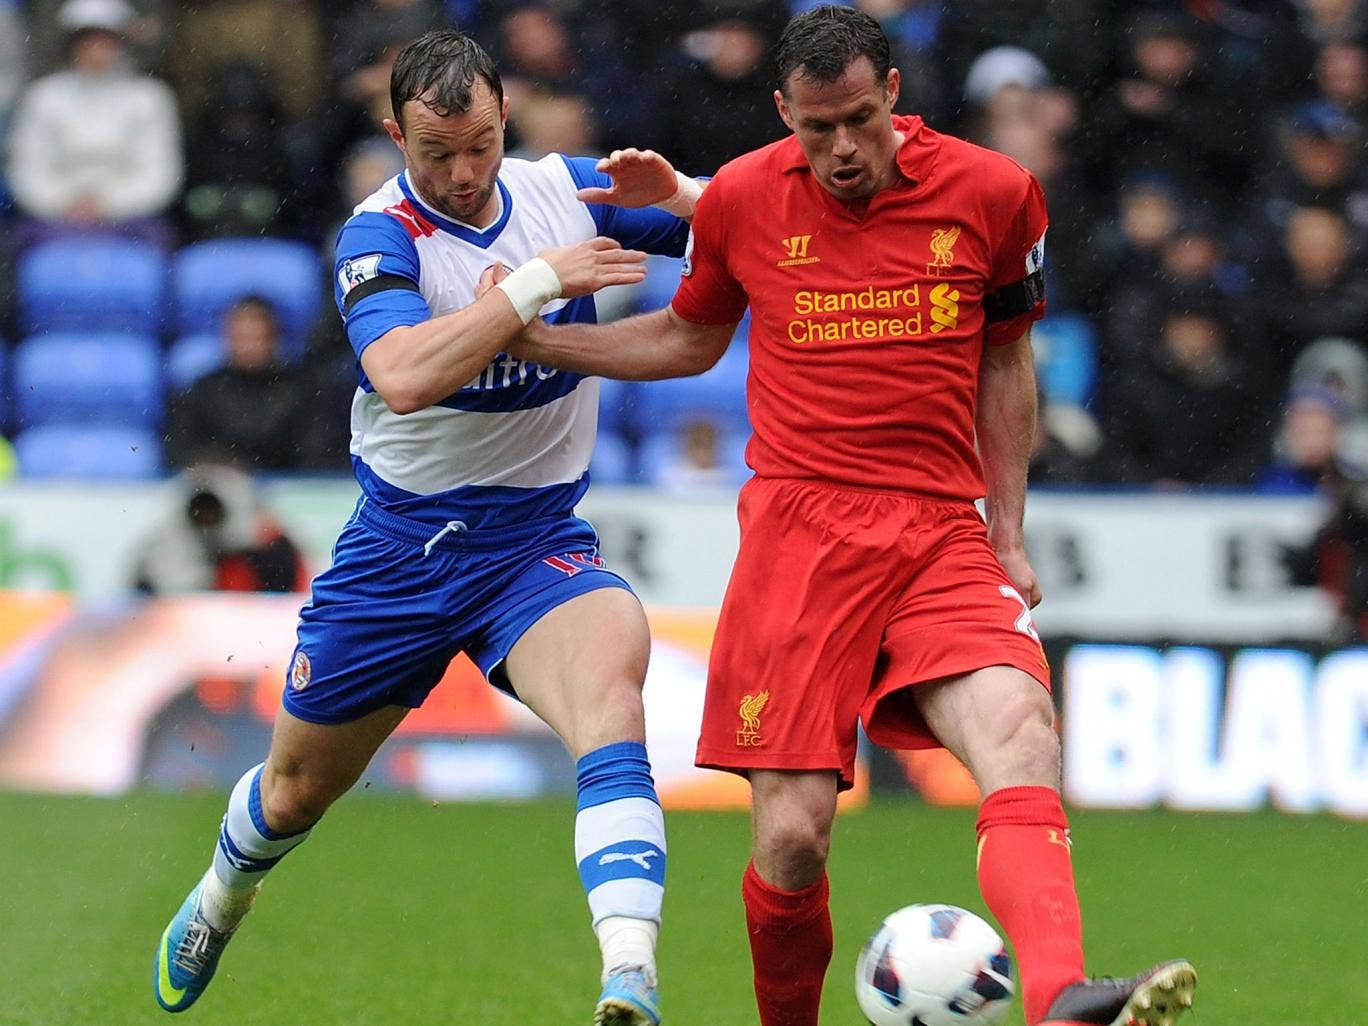 Jamie Carragher (R) of Liverpool competes with Noel Hunt of Reading